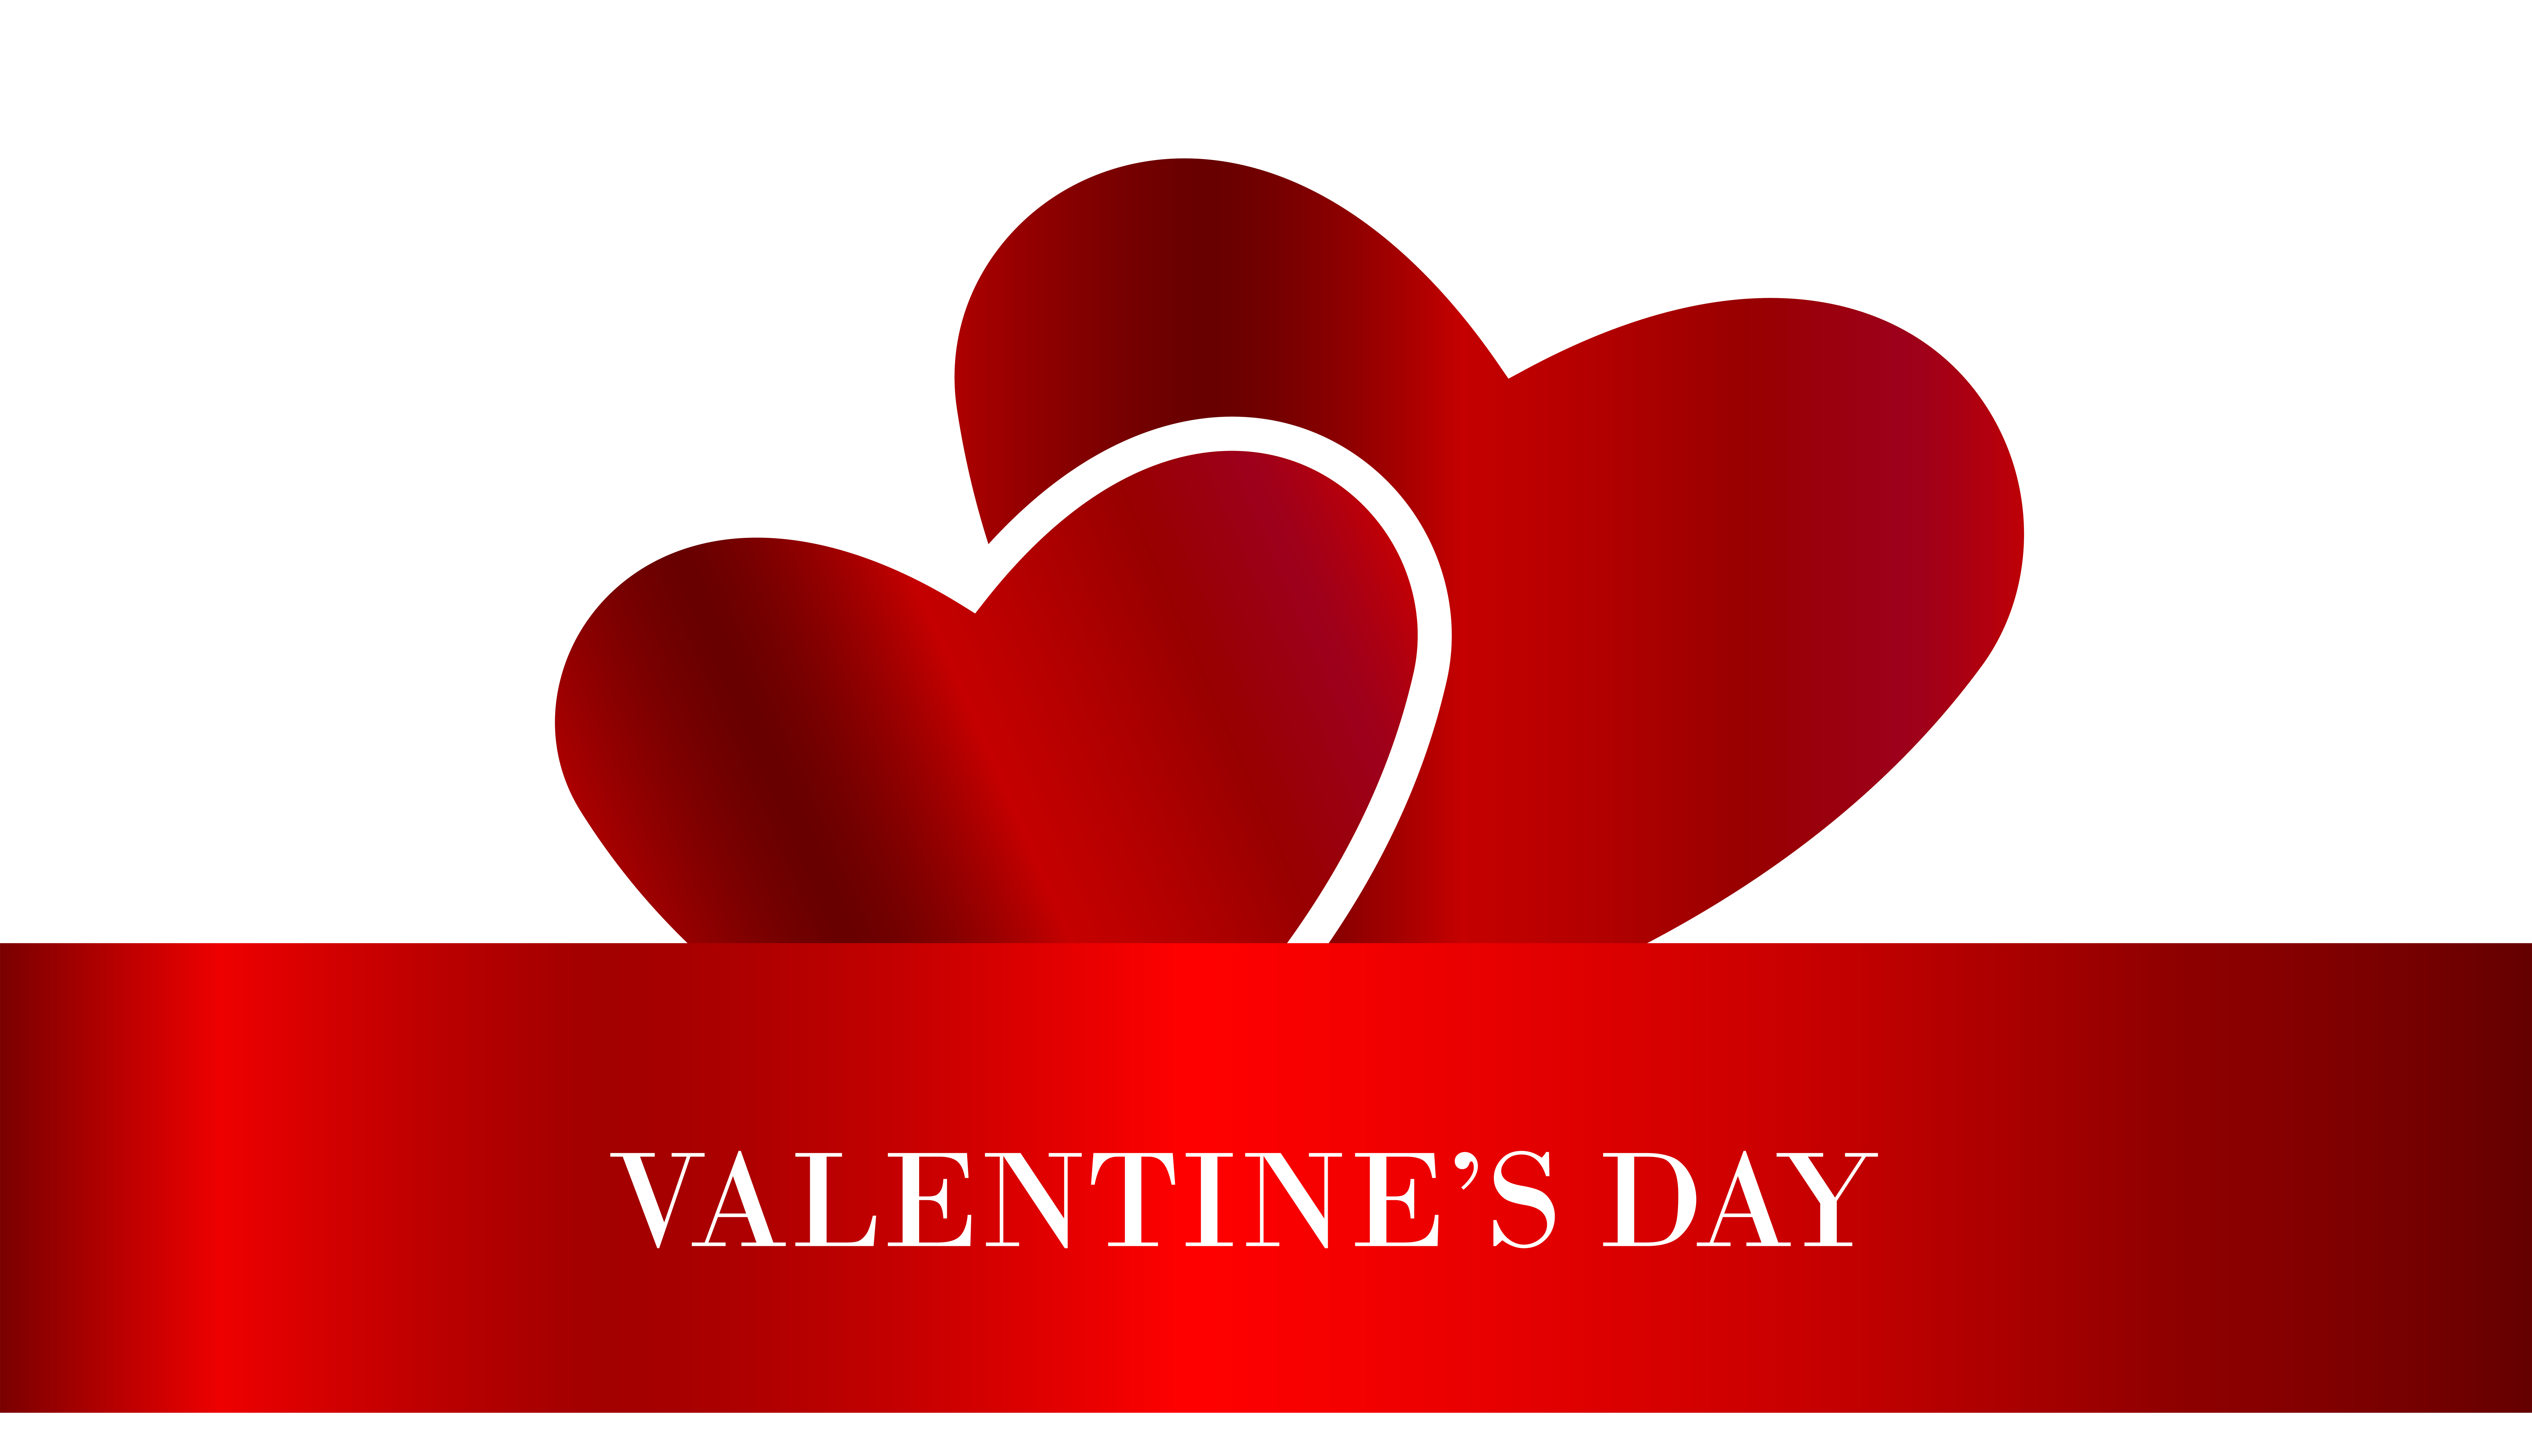 valentines day clipart transparent - Clipground